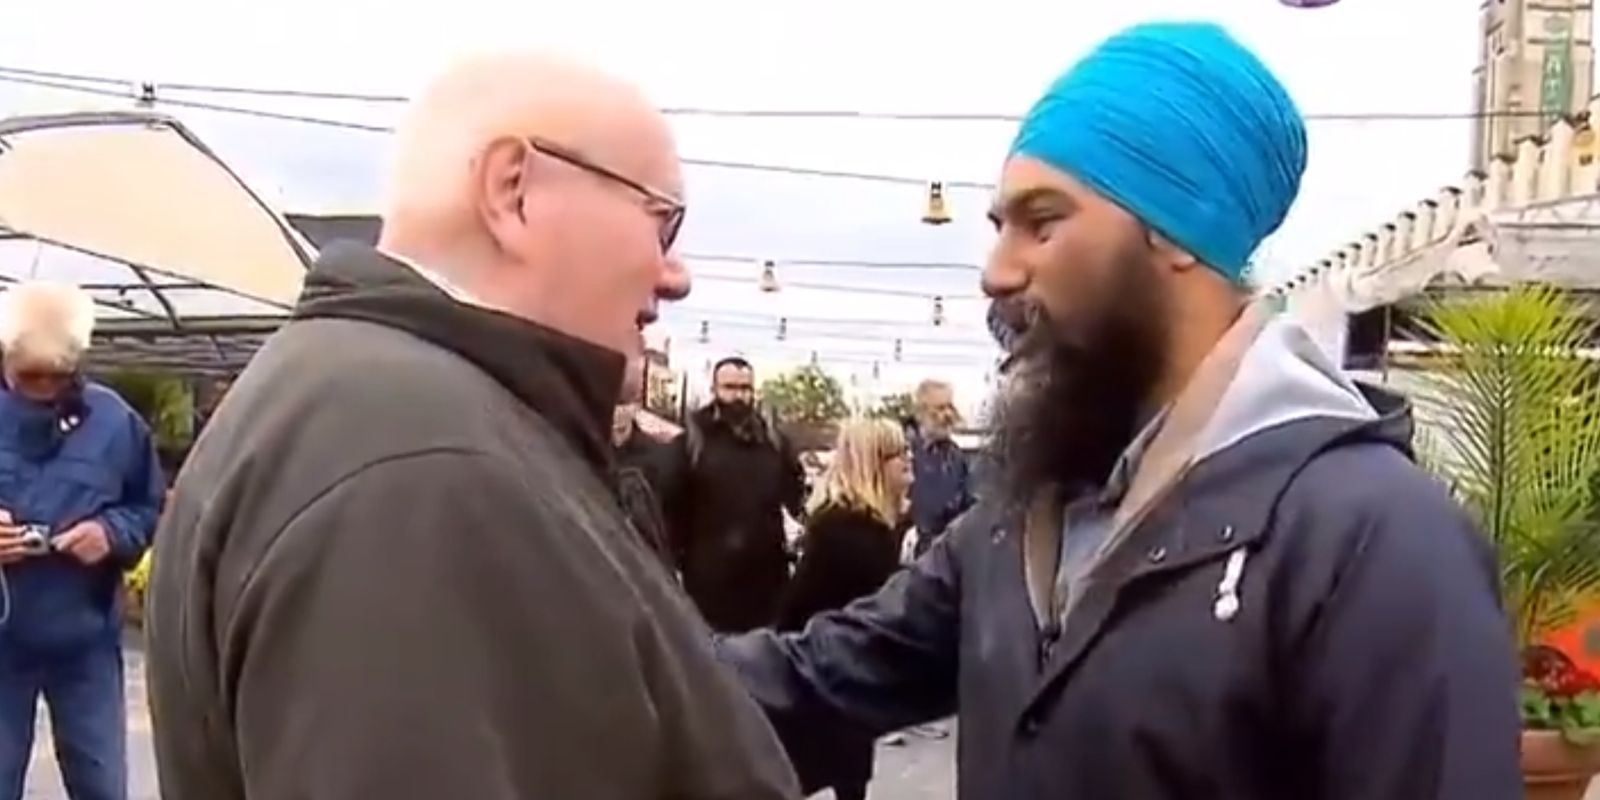 WATCH: Jagmeet Singh owns Montreal heckler who challenged him to remove his turban